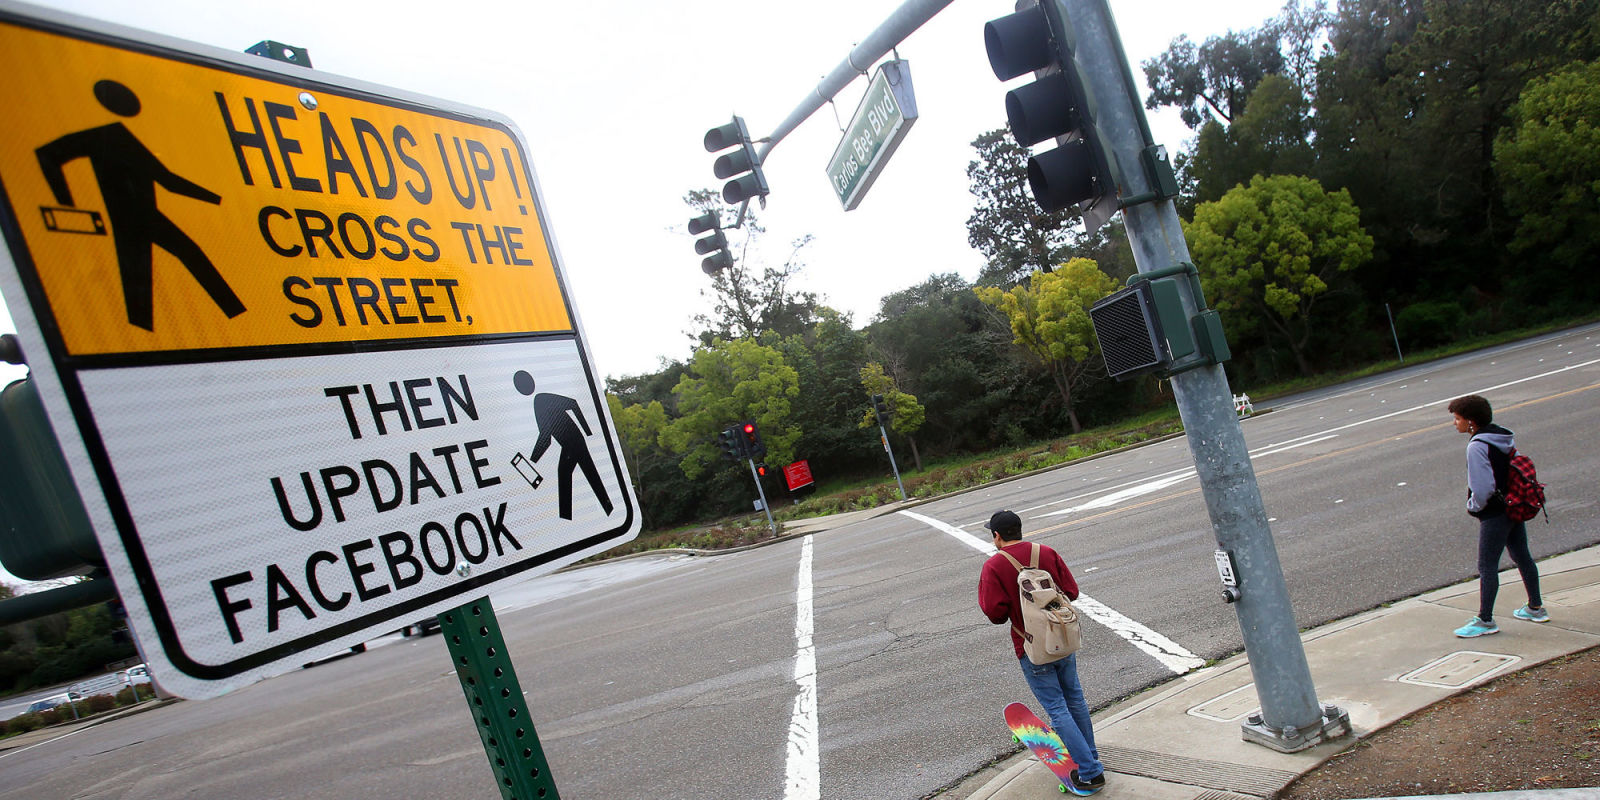 California Street Signs Tell Pedestrians To Cross The